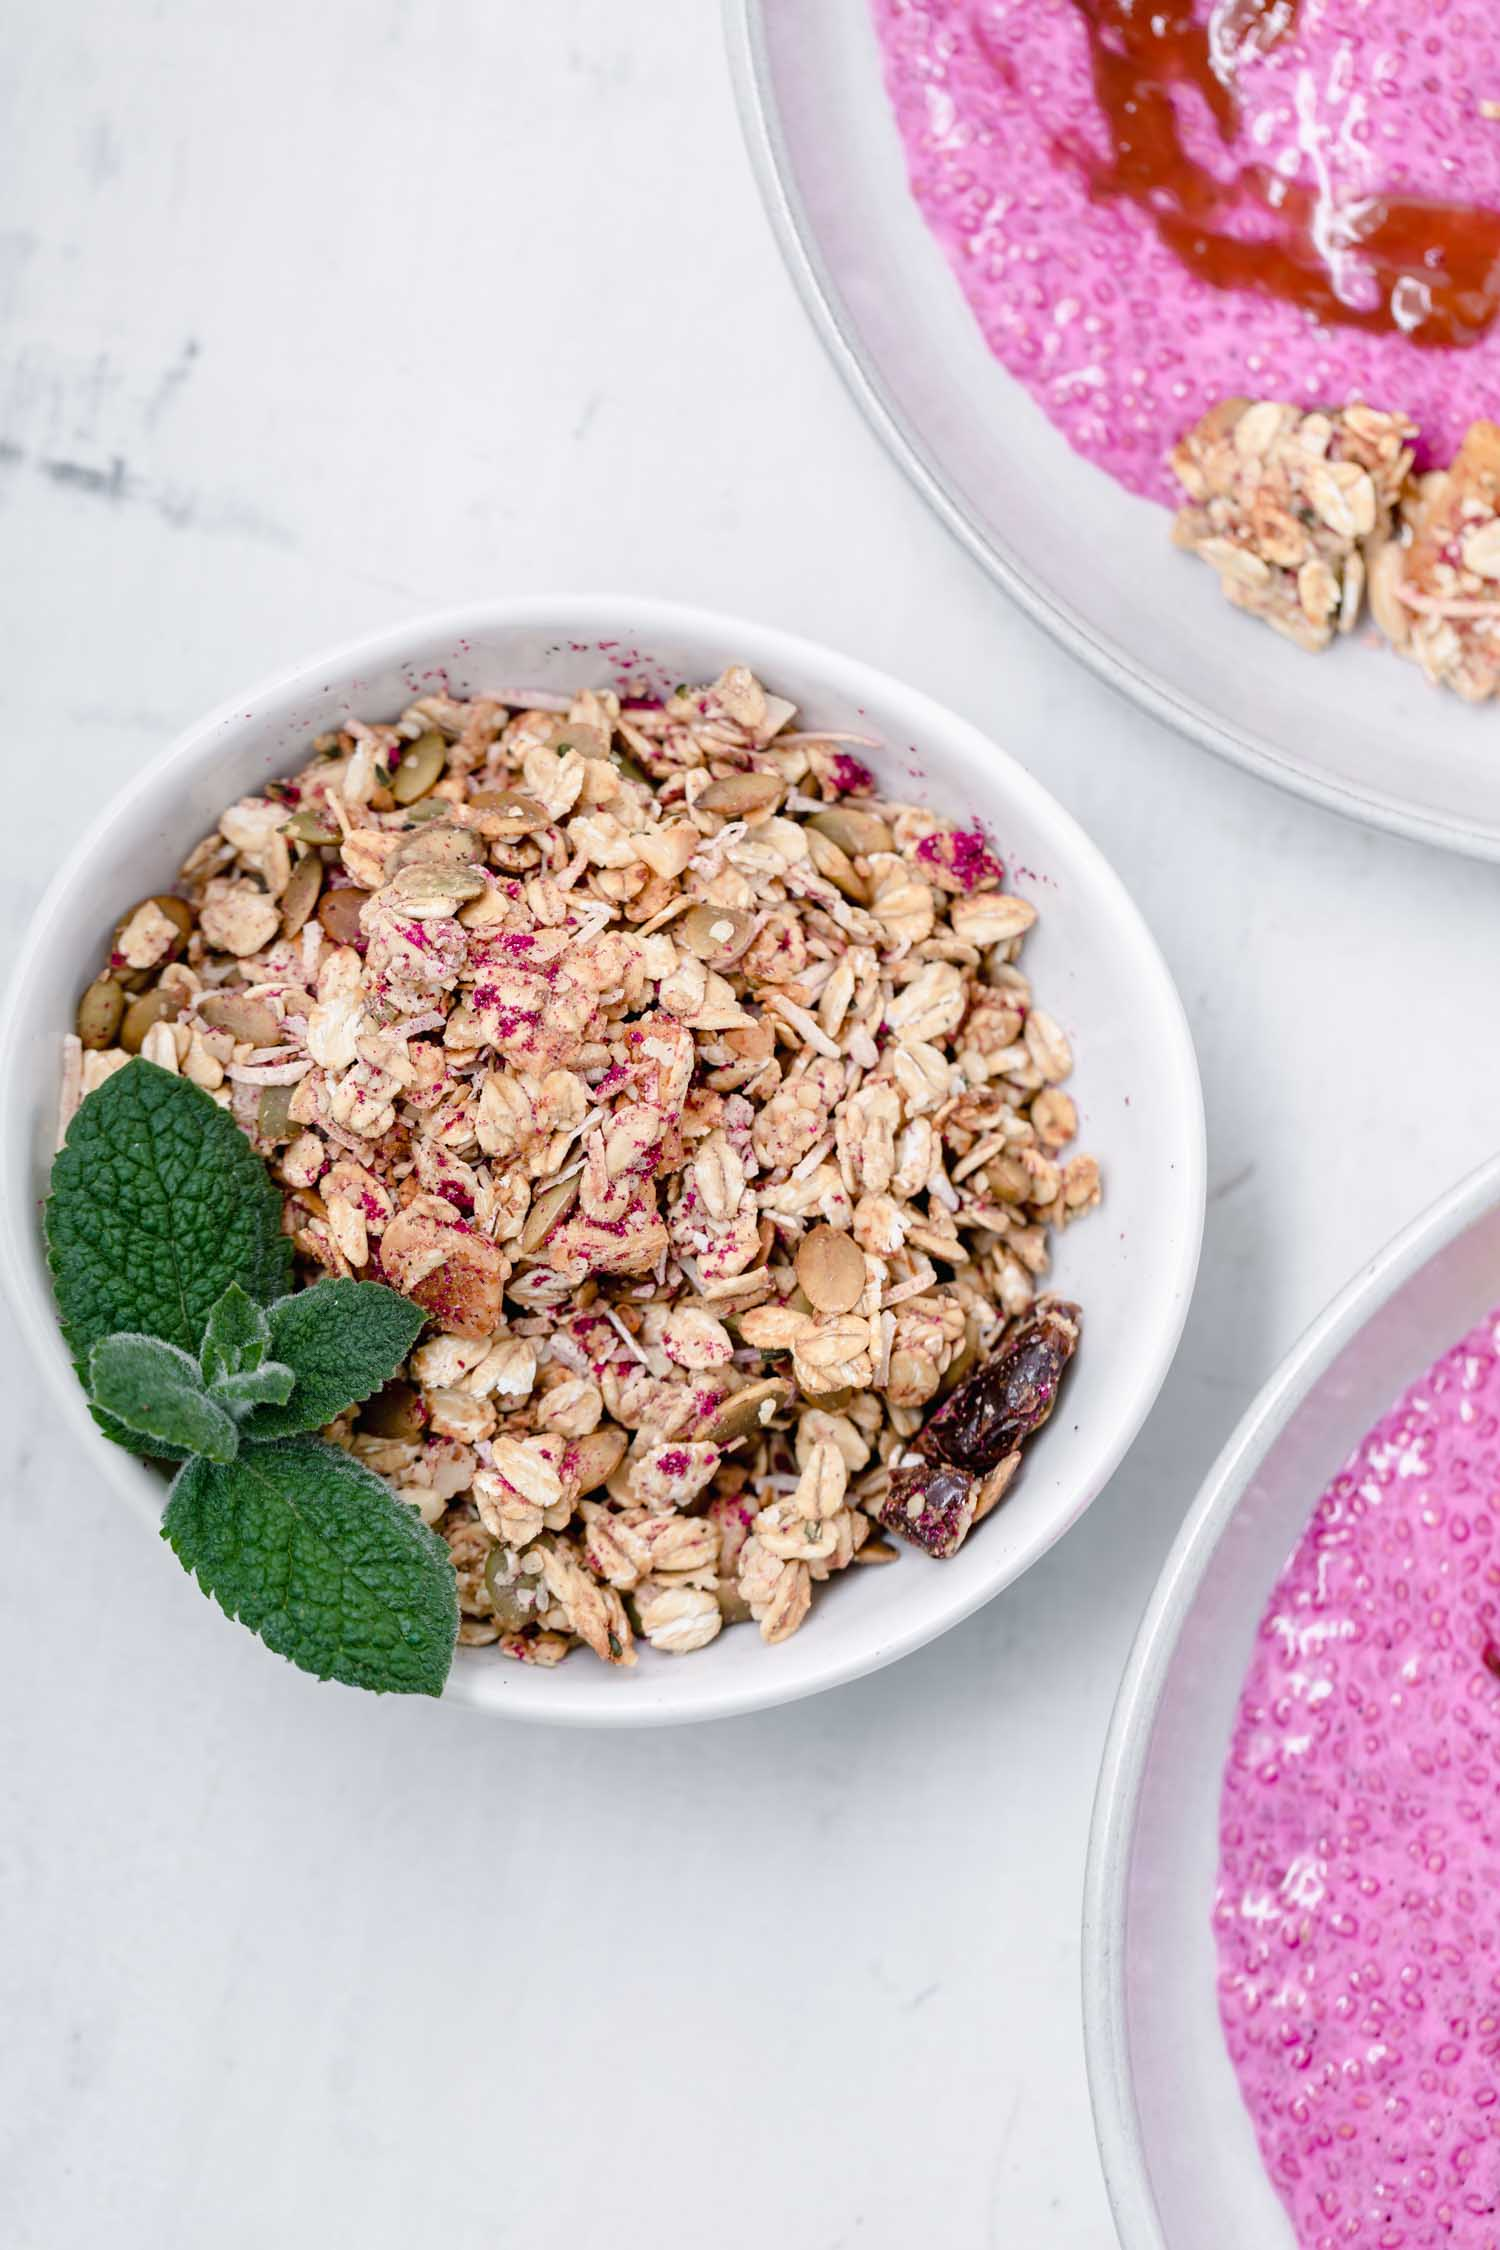 Tropical granola flavored with banana, pineapple, coconut, and macadamia nuts and dusted pink with pitaya (dragon fruit) powder. #tropicalgranola #granolarecipe #summerrecipe #summertime #tropical #tropicalrecipe #vegangranola #veganrecipe #glutenfreevegan #pinkfood